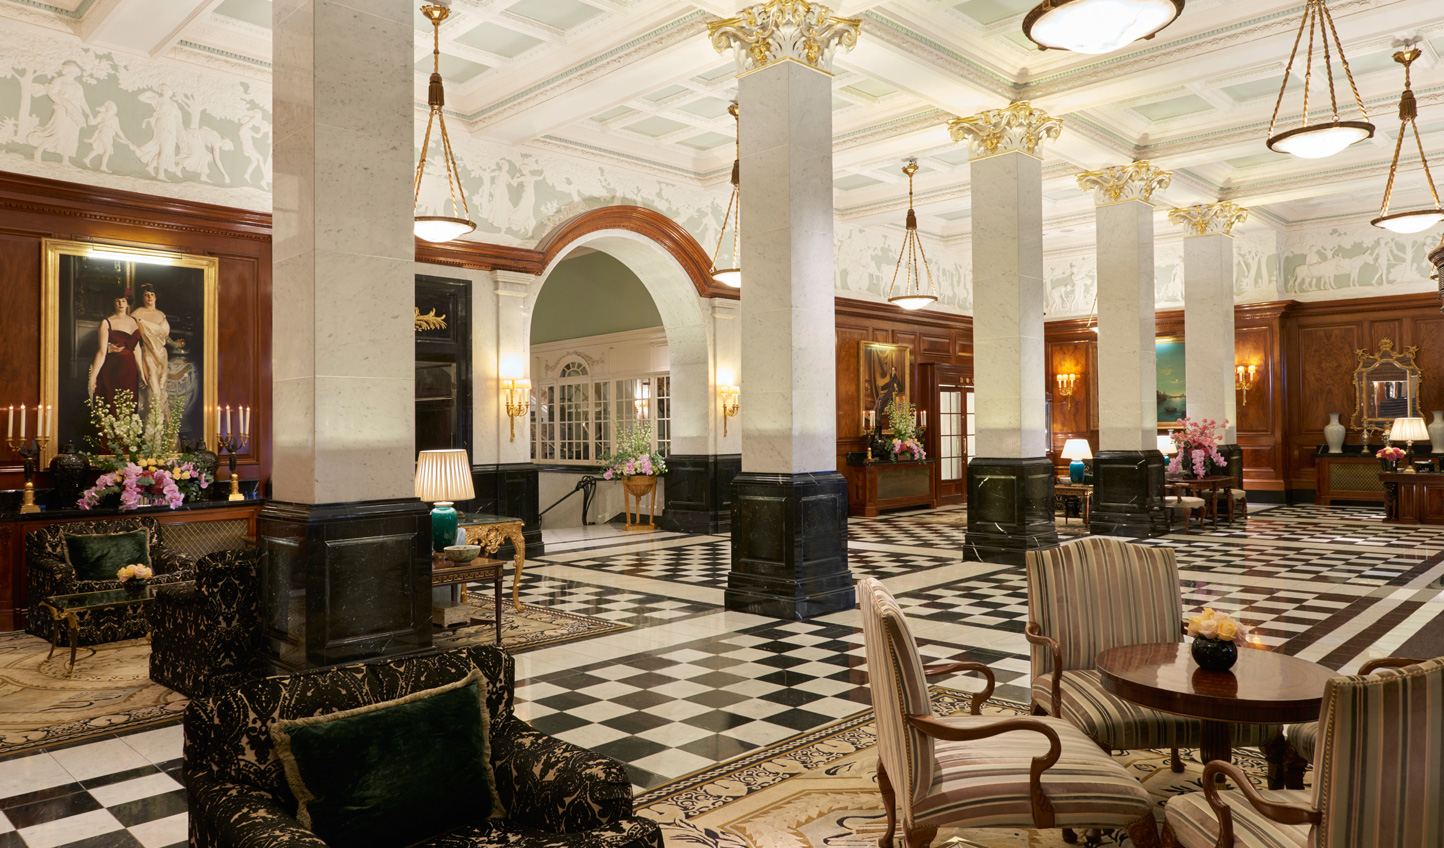 Make an entrance at The Savoy